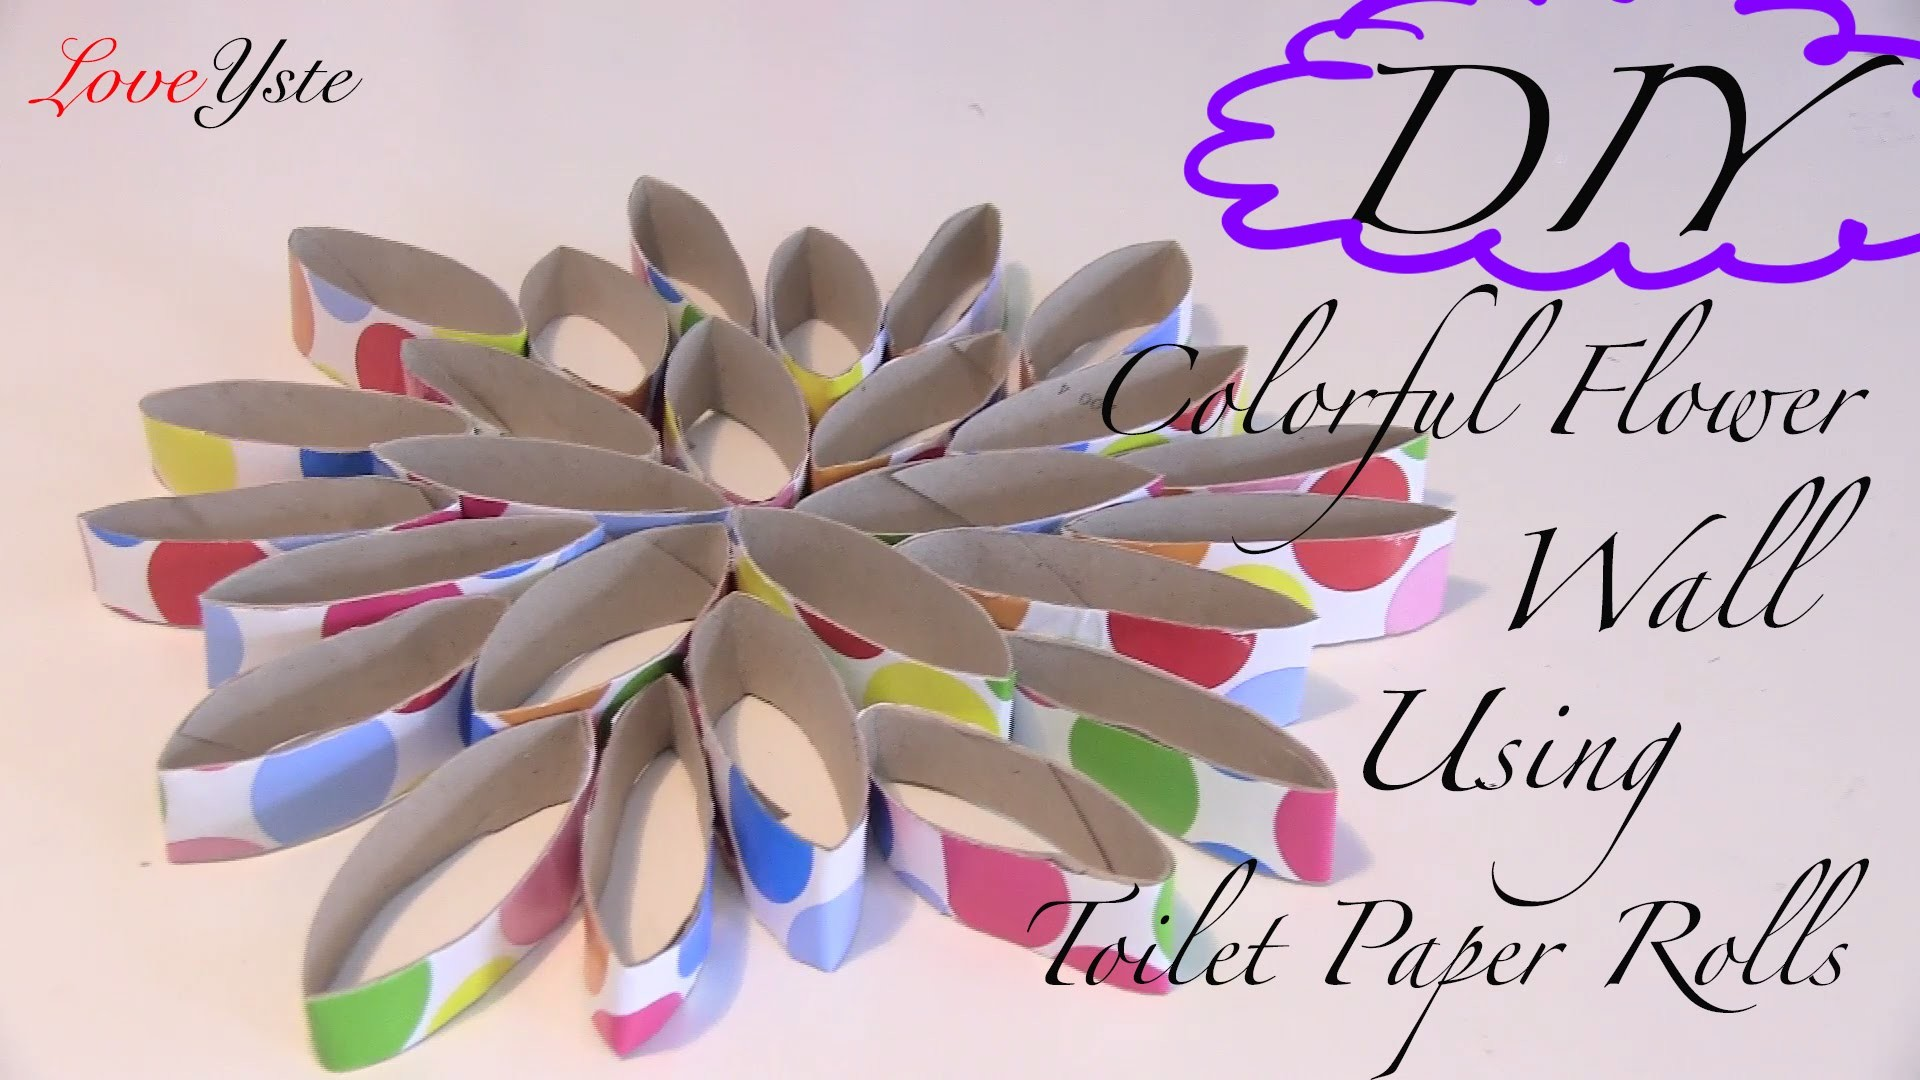 Diy Colorful Flower Wall Using Toilet Paper Rolls Easy Tutorial